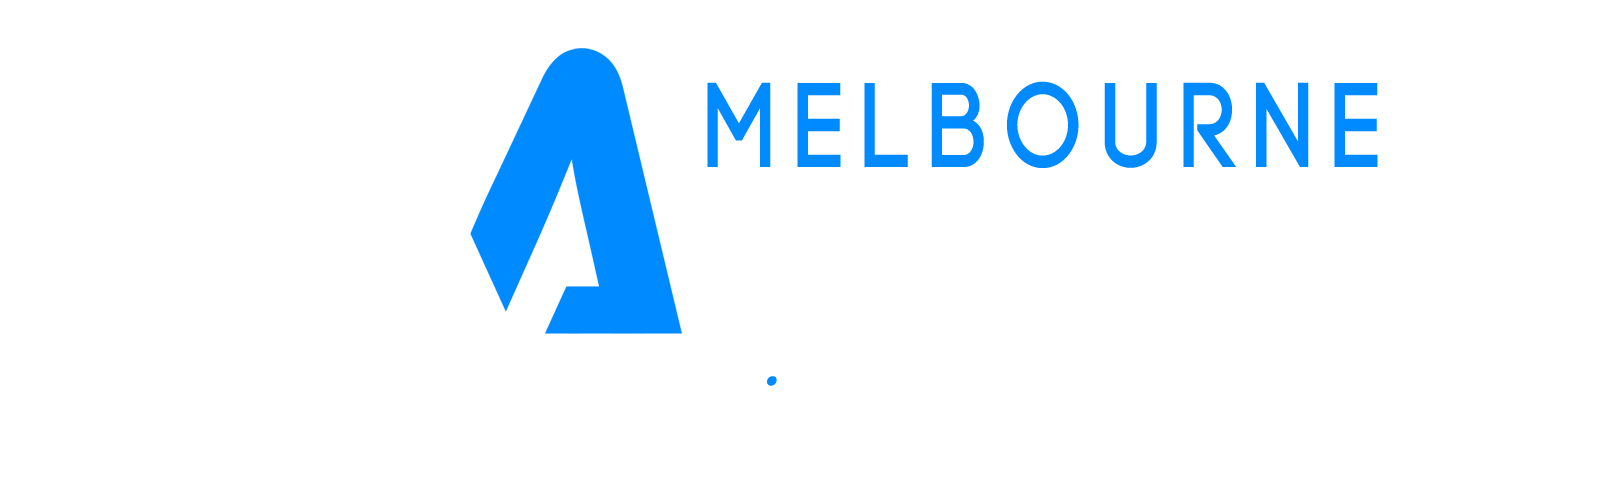 Melbourne Athletic